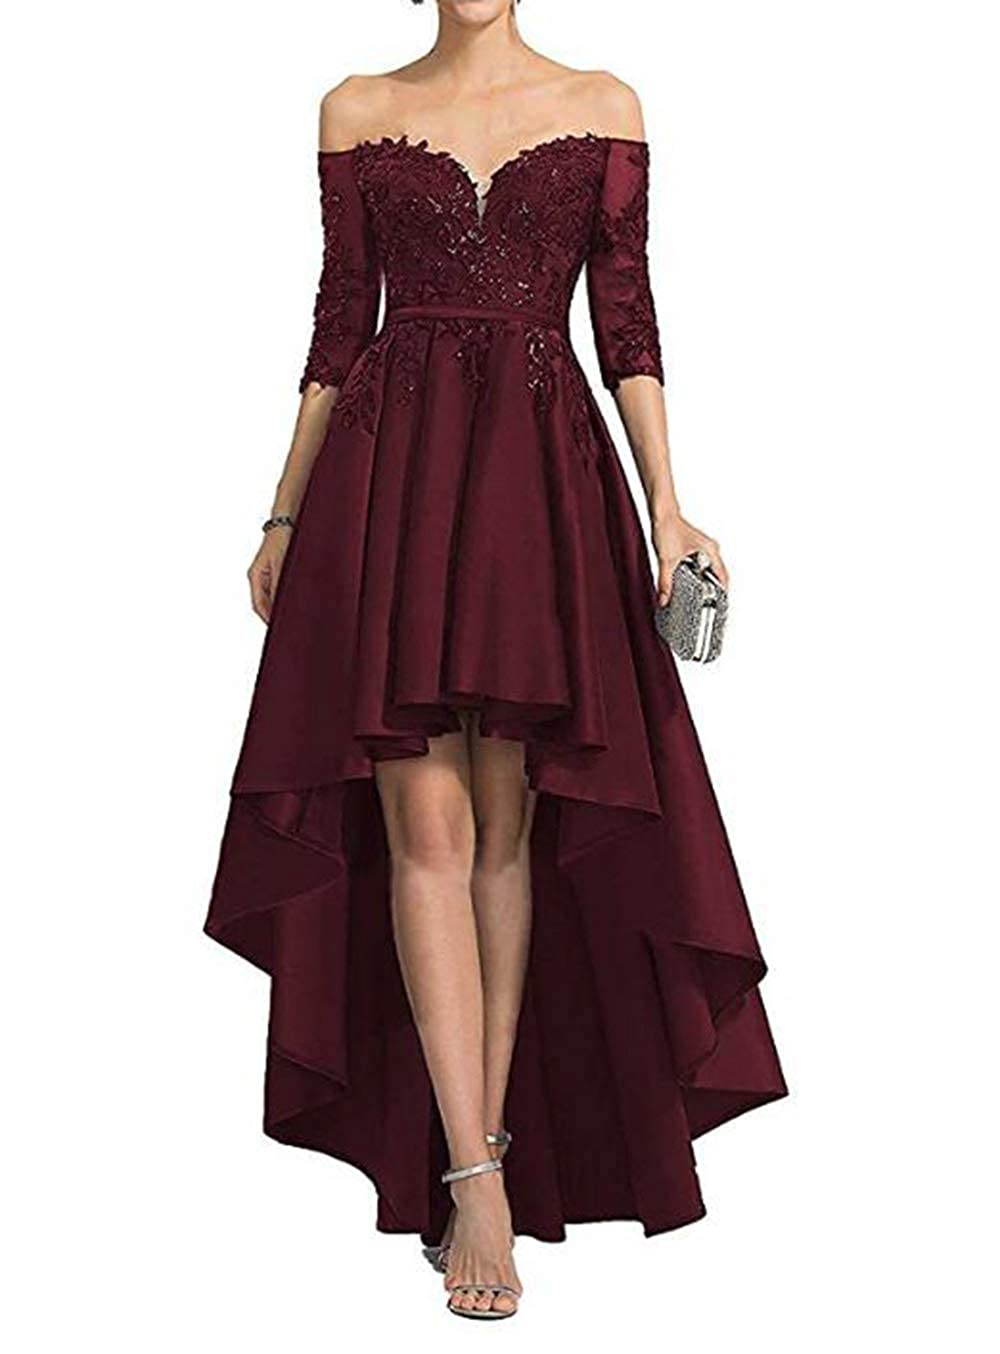 Dark Burgundy alilith.Z Sexy Off The Shoulder Prom Dresses High Low 3 4 Sleeves Beaded Lace Satin Evening Dresses Party Gowns for Women